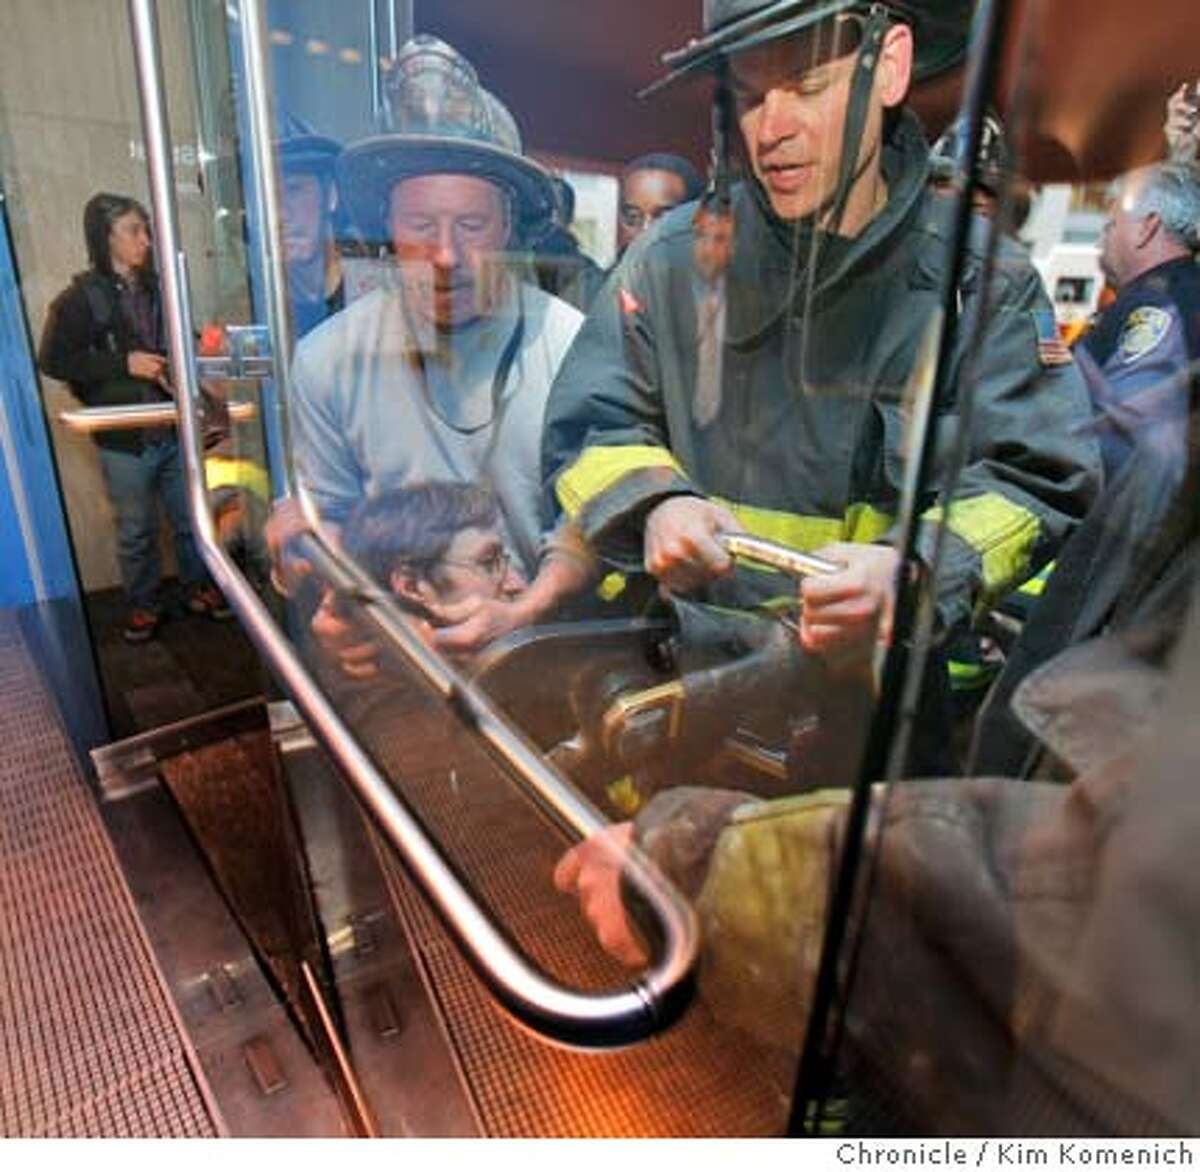 Although they ultimately didn't need to use it, San Francisco firefighters test a pneumatic cutting device on a rail where U.C. Berkeley senior Michael Taylor used a bicycle lock to chain himself to the west entrance to the William H. Rutter Center at UCSF Mission Bay. Taylor was part of a protest against the U.C. Regents, who would meet inside a few hours later. Taylor ultimately gave the key to officials and was detained. Photo by Kim Komenich / The San Francisco Chronicle